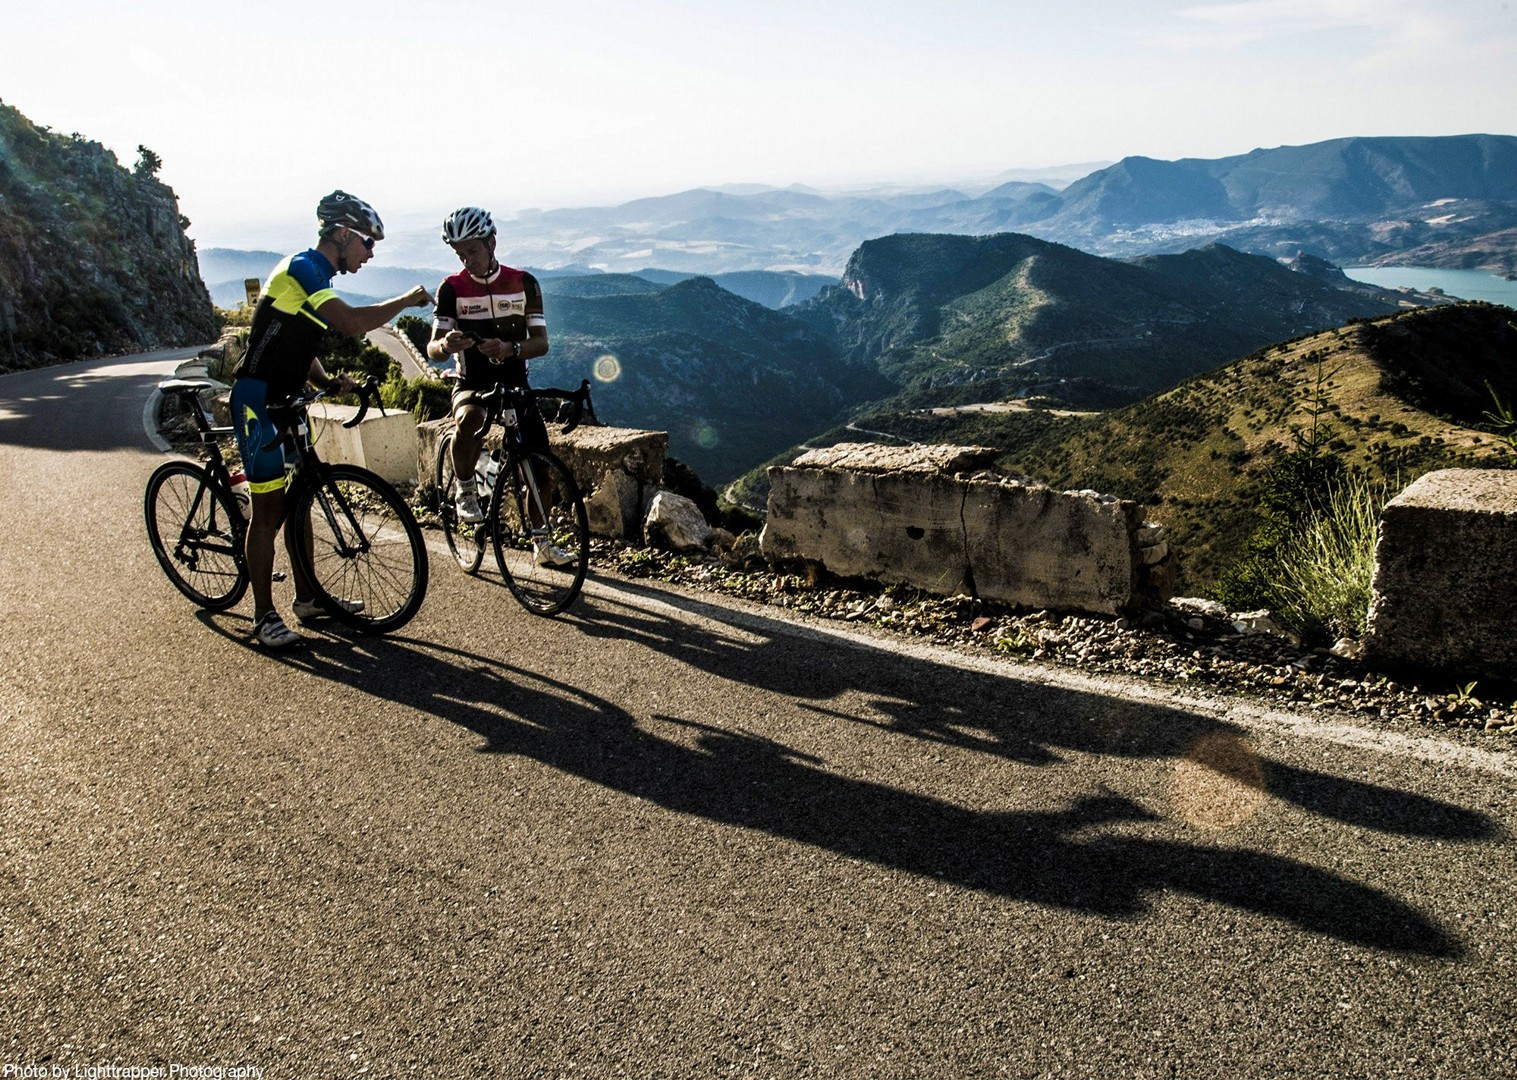 sierras-andalucia-saddle-skedaddle-road-cycling-self-guided-holiday.jpg - Southern Spain - Andalucia - Los Pueblos Blancos - Self-Guided Road Cycling Holiday - Road Cycling